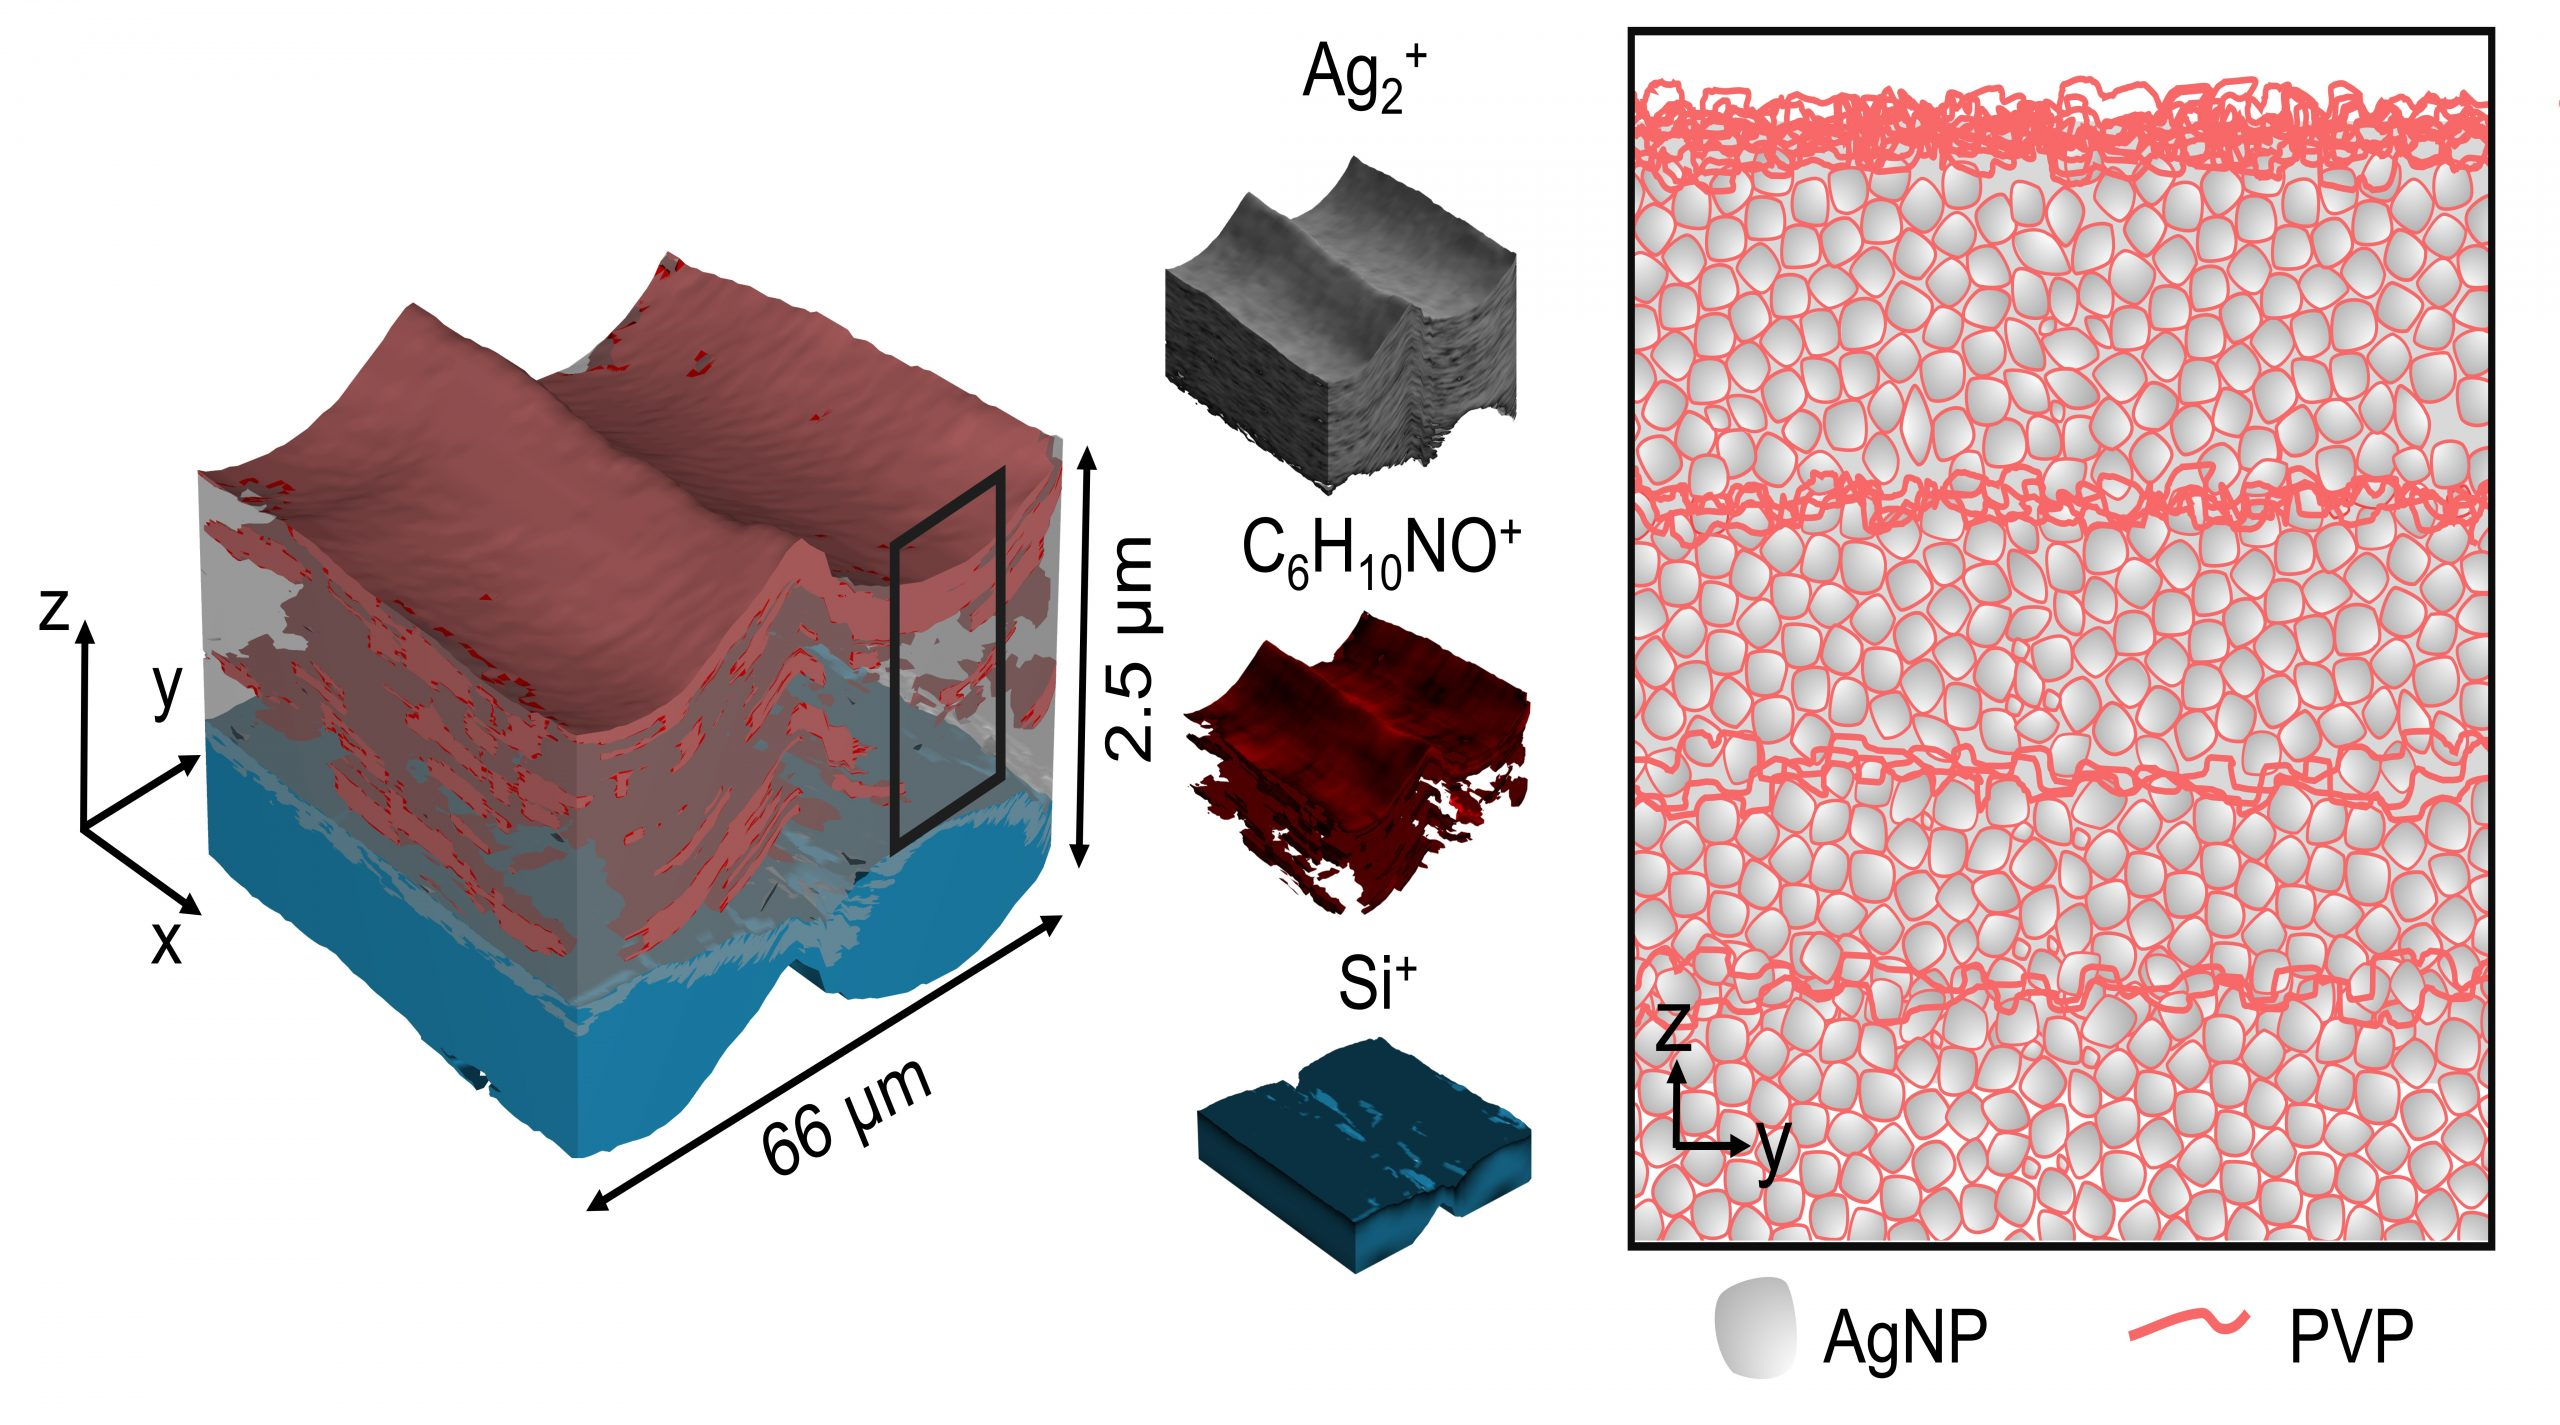 chemical analysis of 4 stacked layers of inkjet 3D printed silver nanoparticles. Image via Trindade et al.